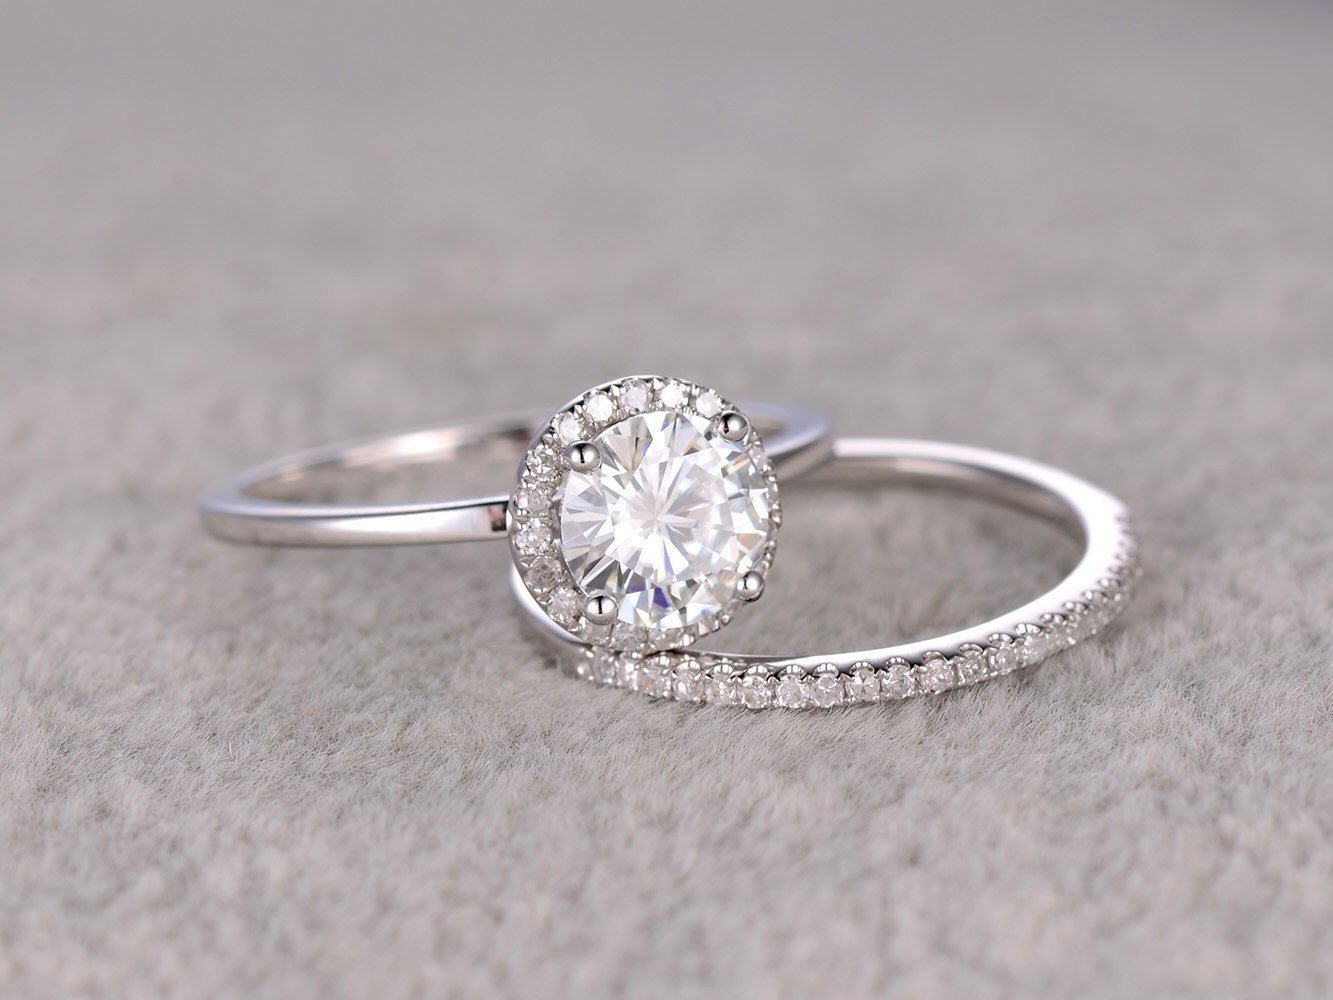 2pcs 1ct Moissanite Bridal Ring SetEngagement White Plain GoldUltra Thin Diamond